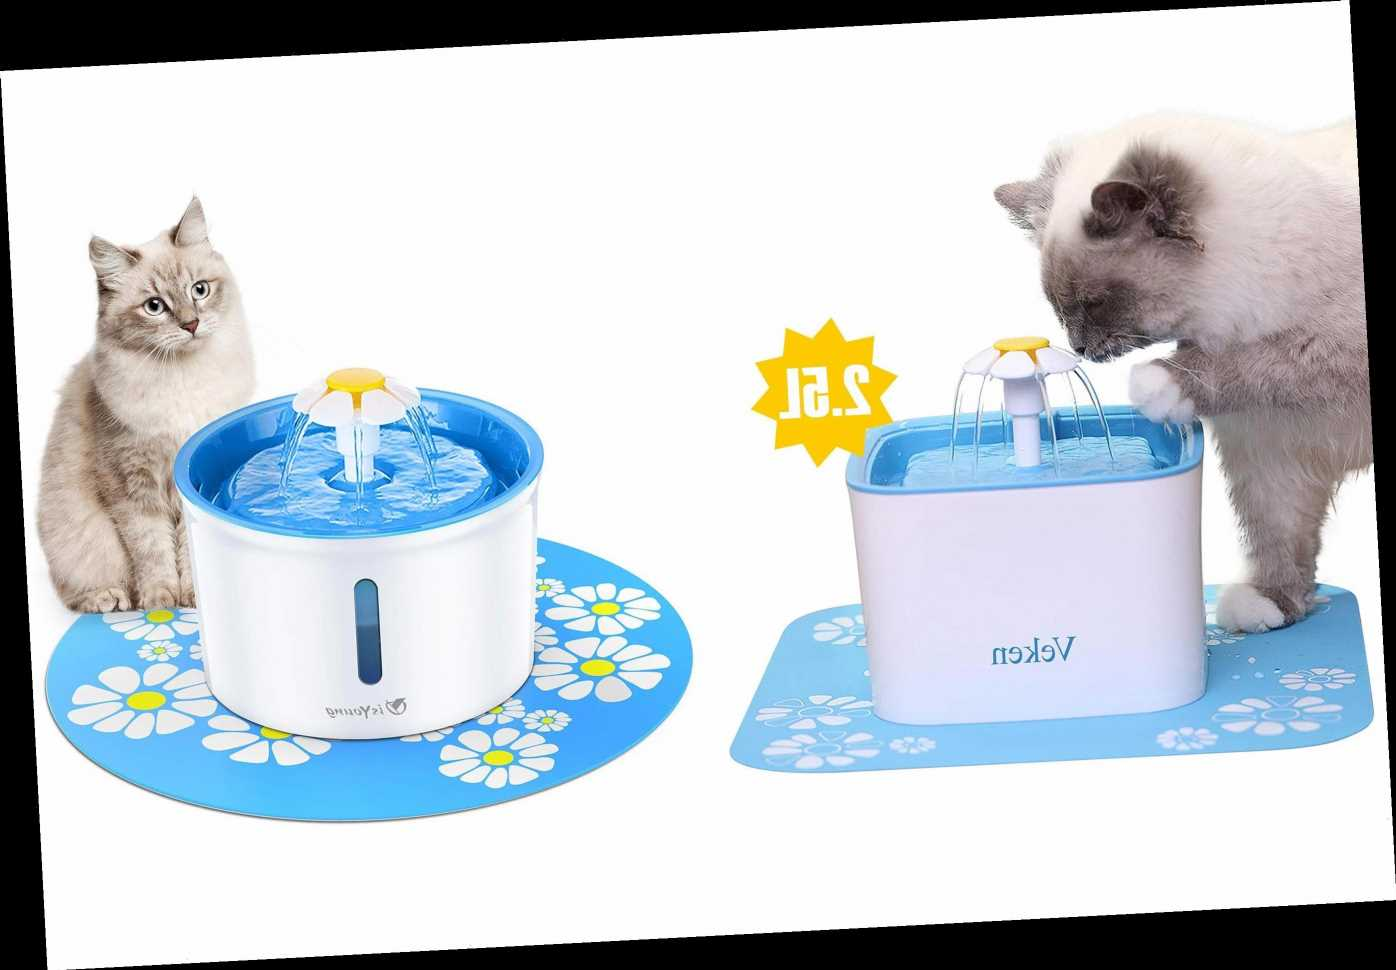 We Tracked Down Those Flower Cat Water Fountains All Over Instagram — and Found Amazon's Best Seller